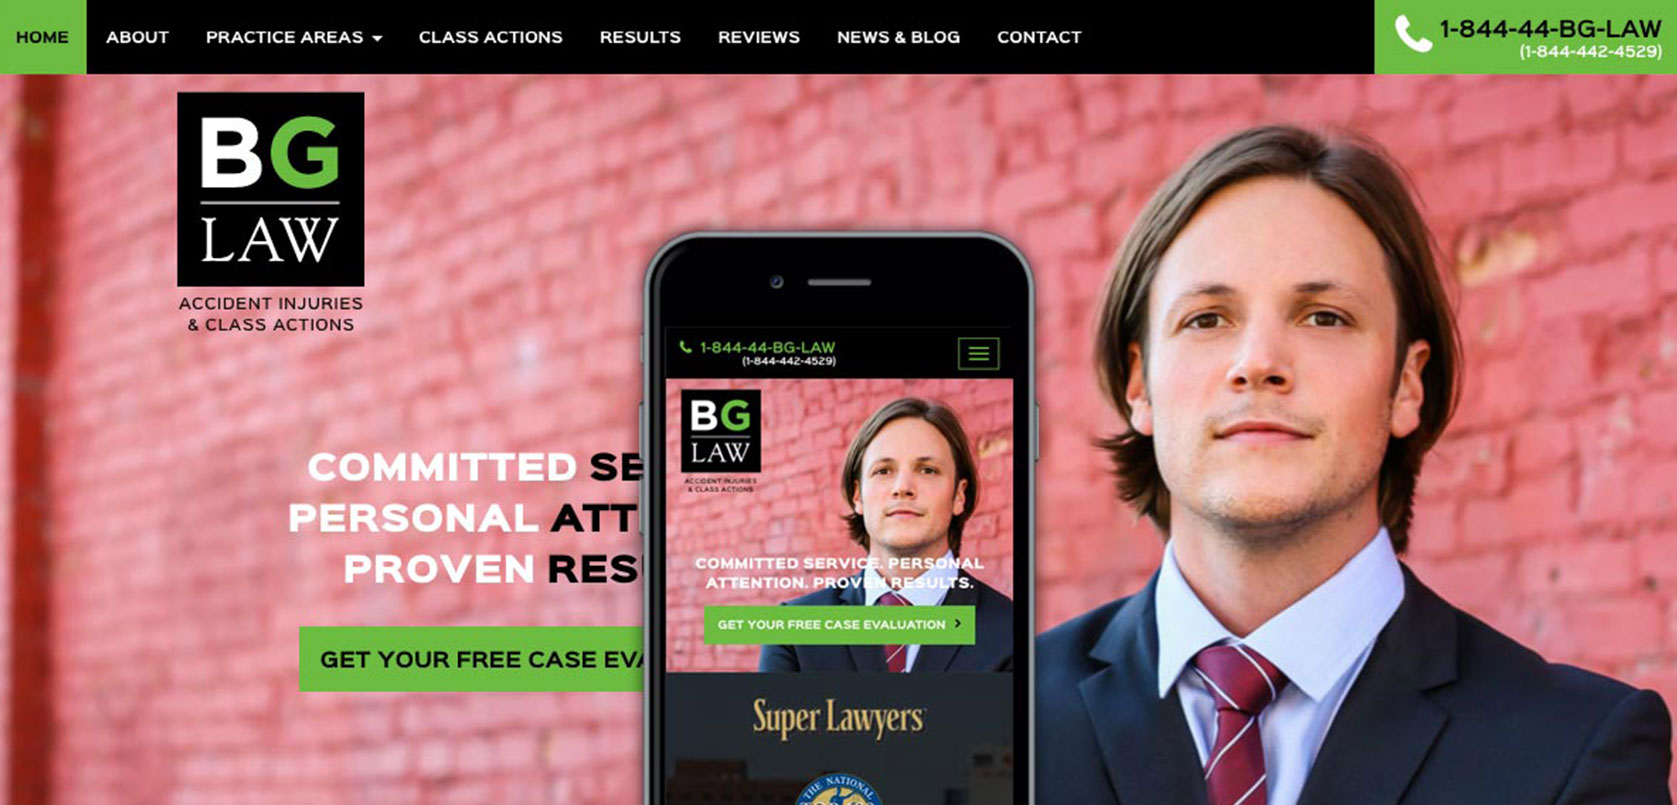 BG Law Website Design